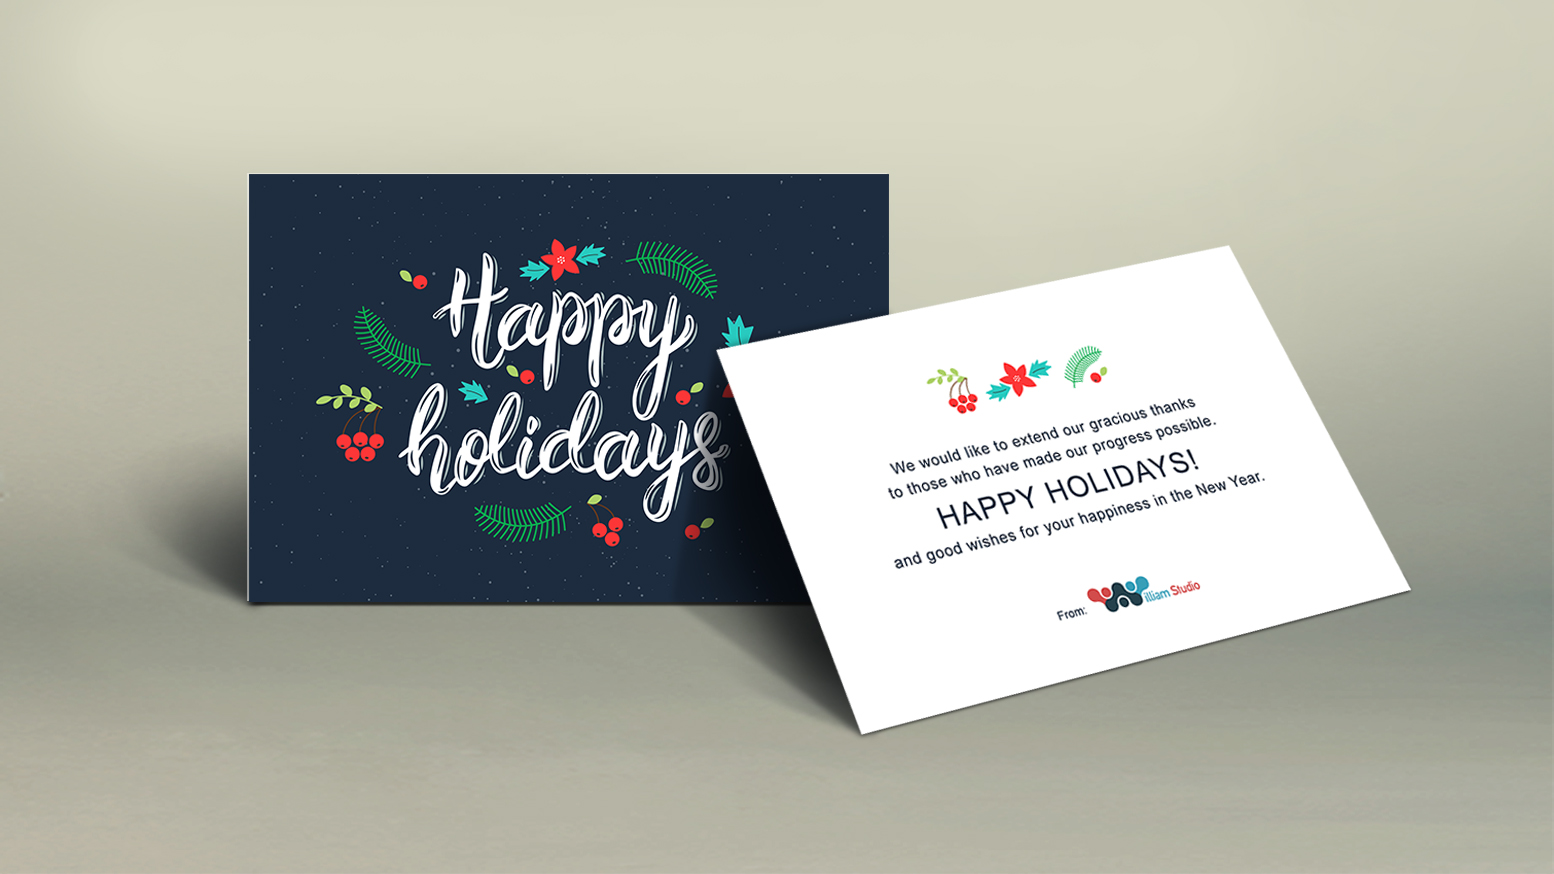 4 Things You Need to Know About Business Greeting Cards